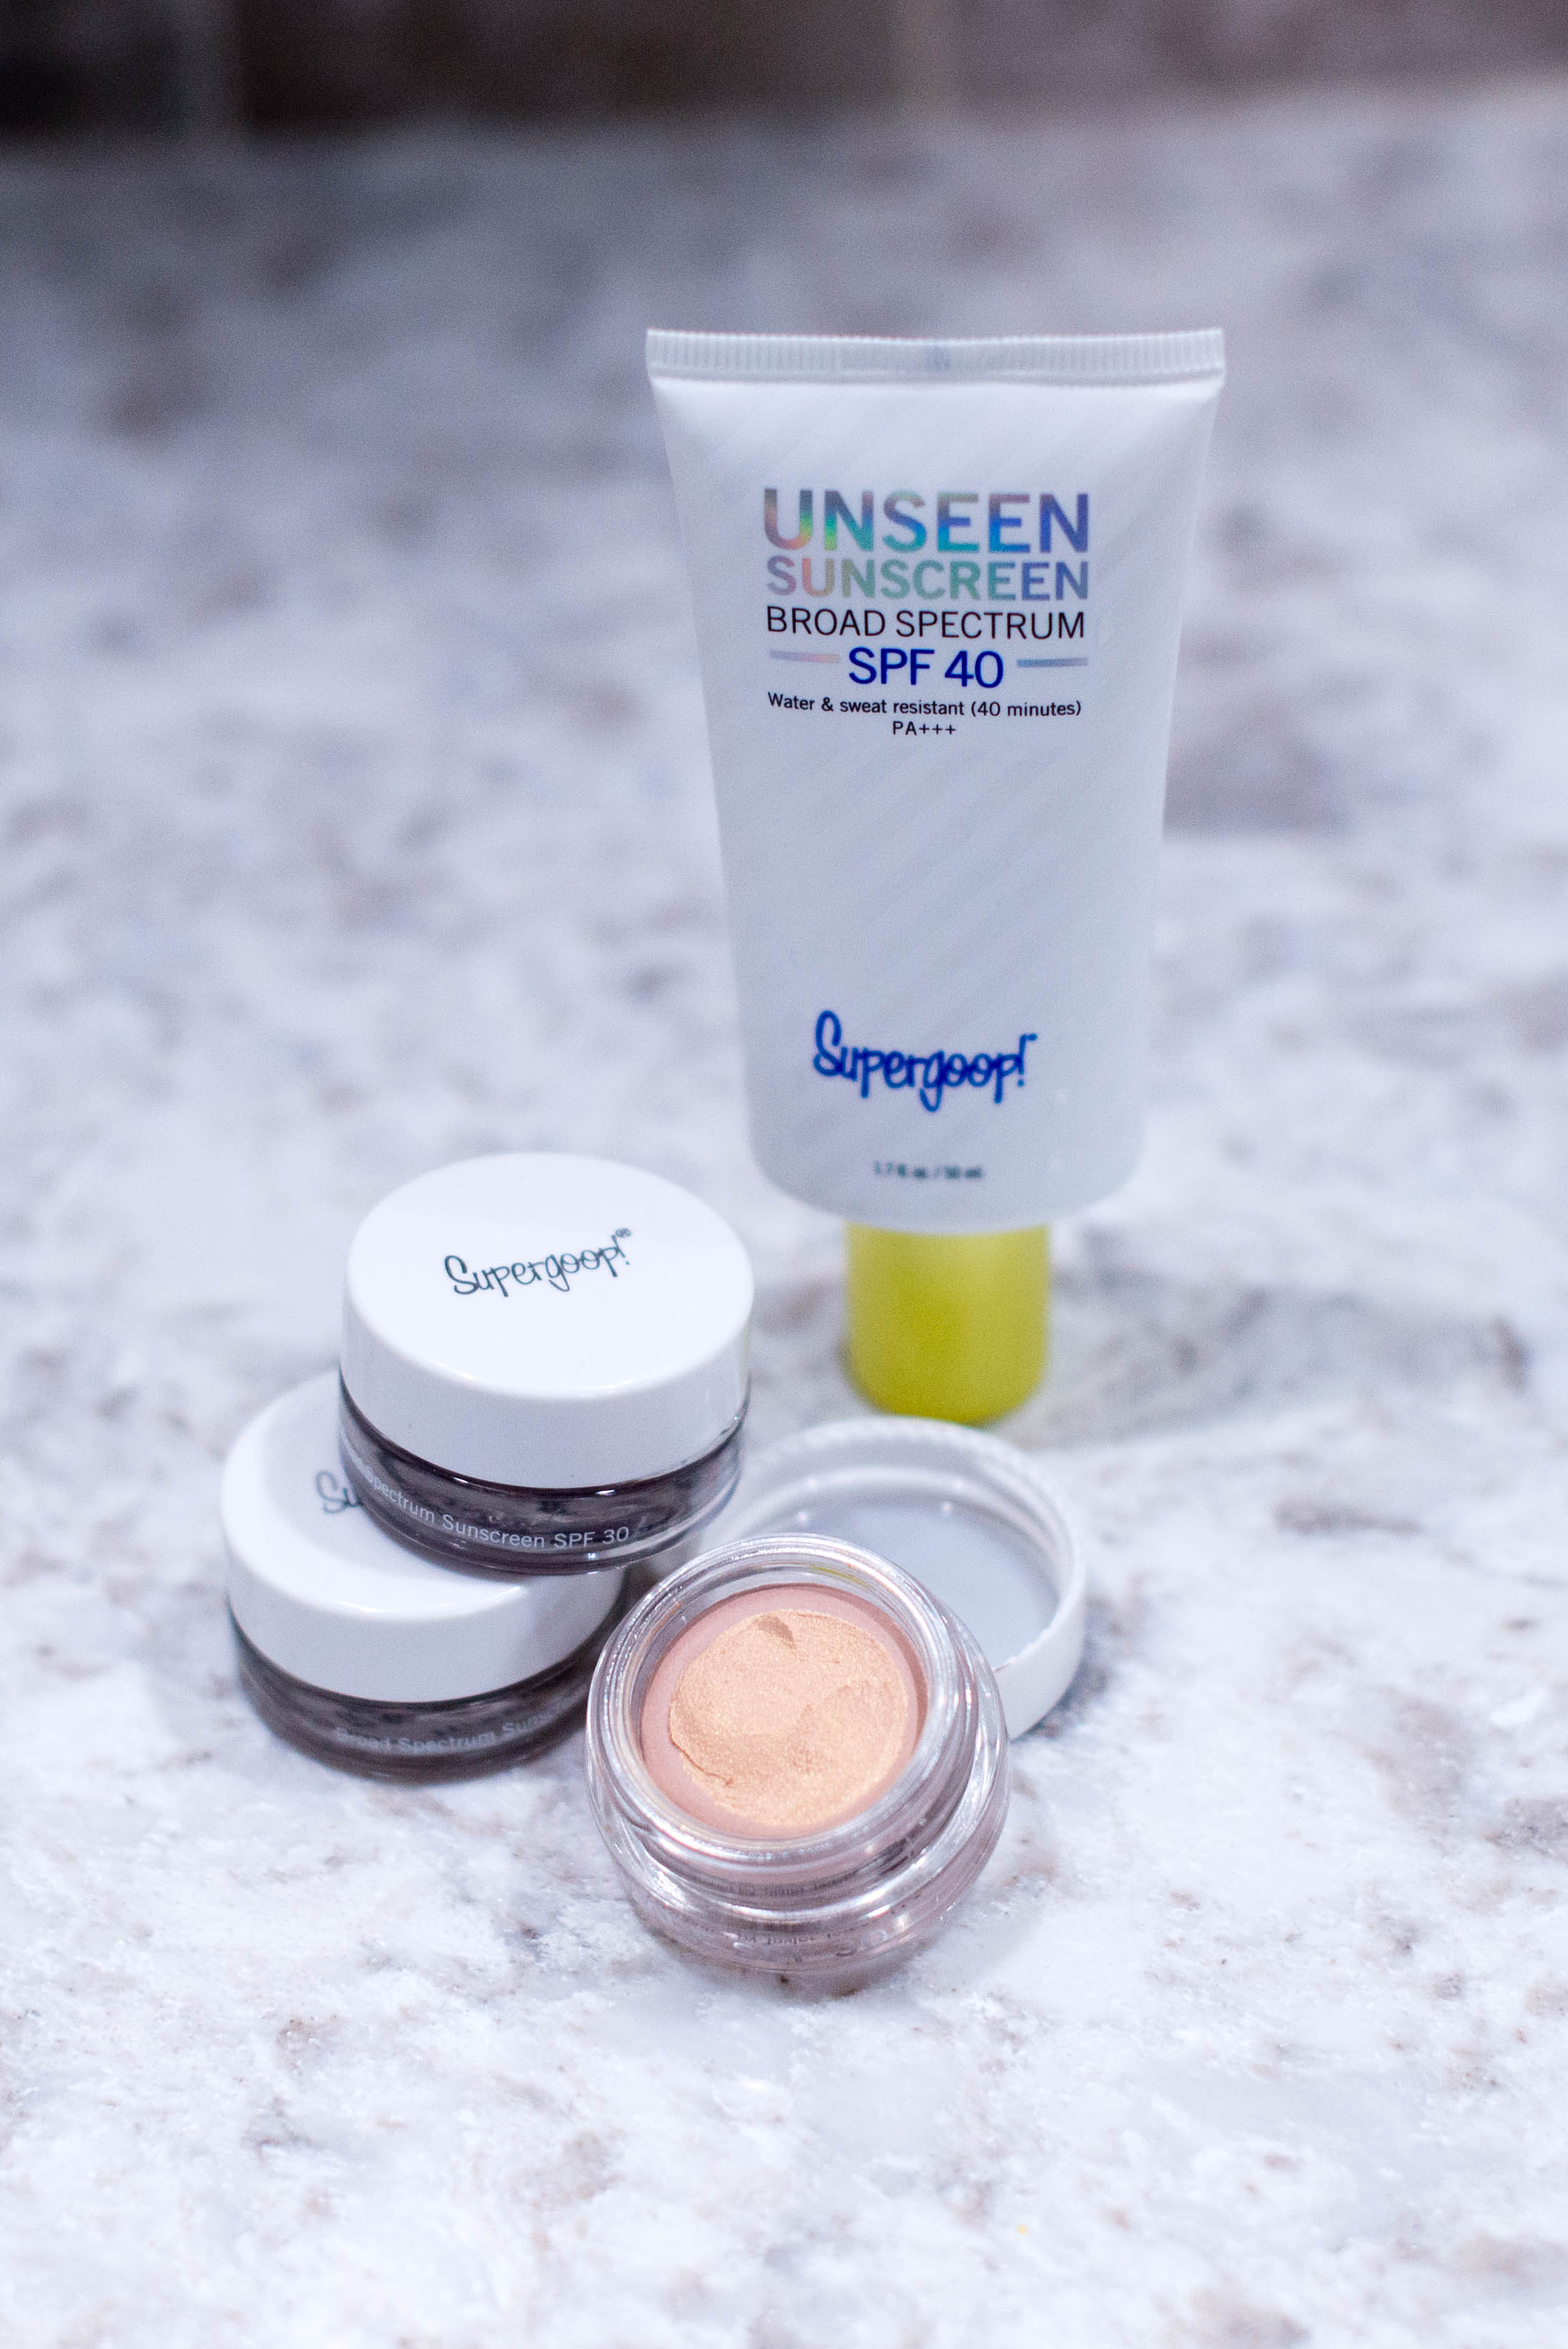 Smitten. Supergoop! has 2 new products we're obsessed with: Unseen Sunscreen, an invisible makeup primer, & Shimmershade, cream eyeshadow. Ready for summer!